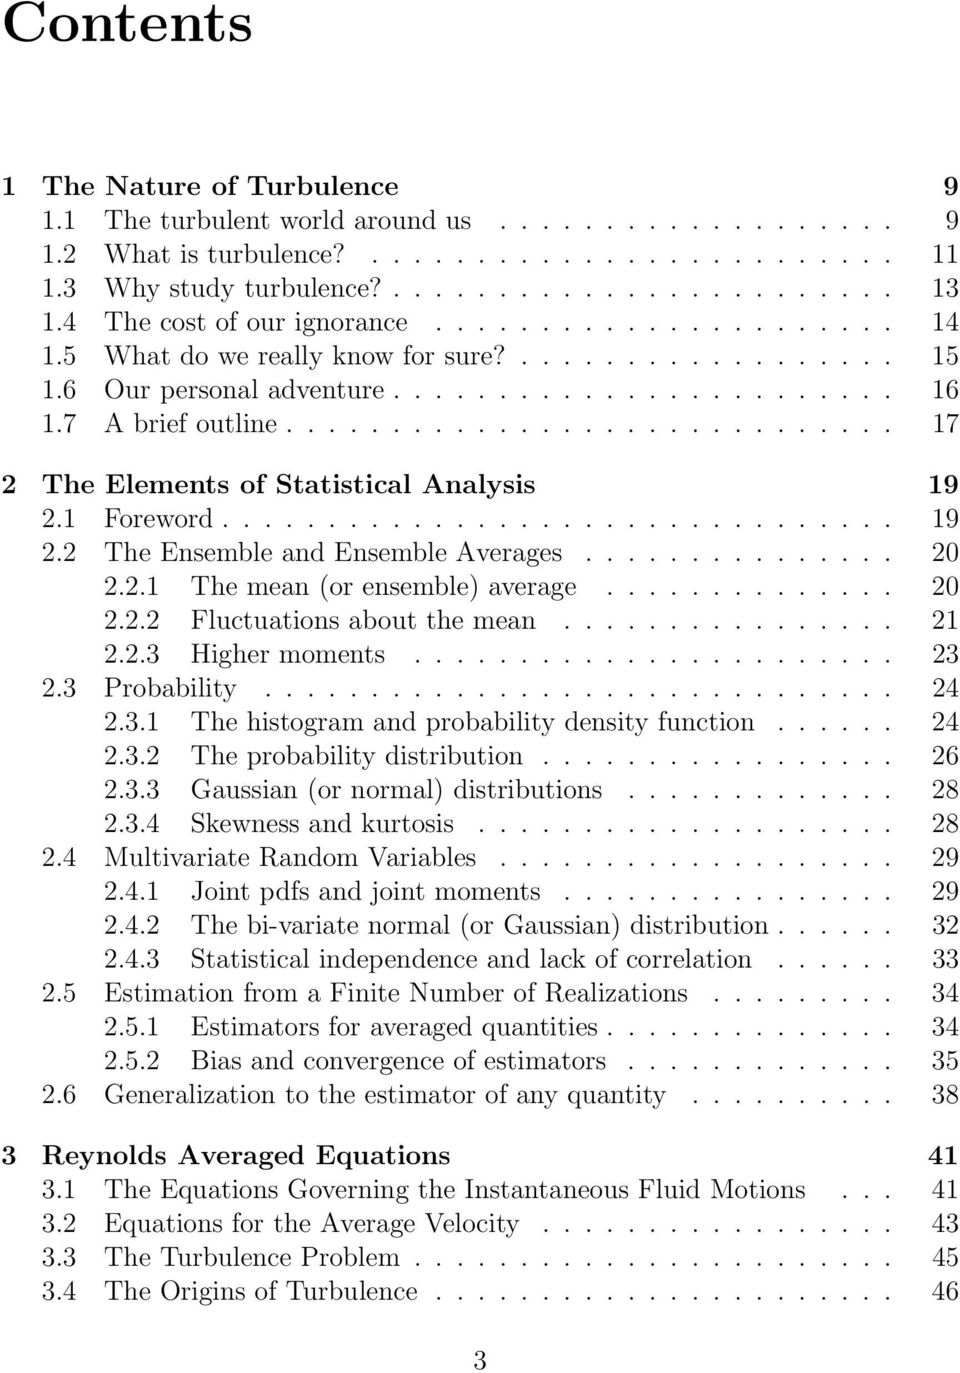 ............................ 17 2 The Elements of Statistical Analysis 19 2.1 Foreword................................ 19 2.2 The Ensemble and Ensemble Averages............... 20 2.2.1 The mean (or ensemble) average.